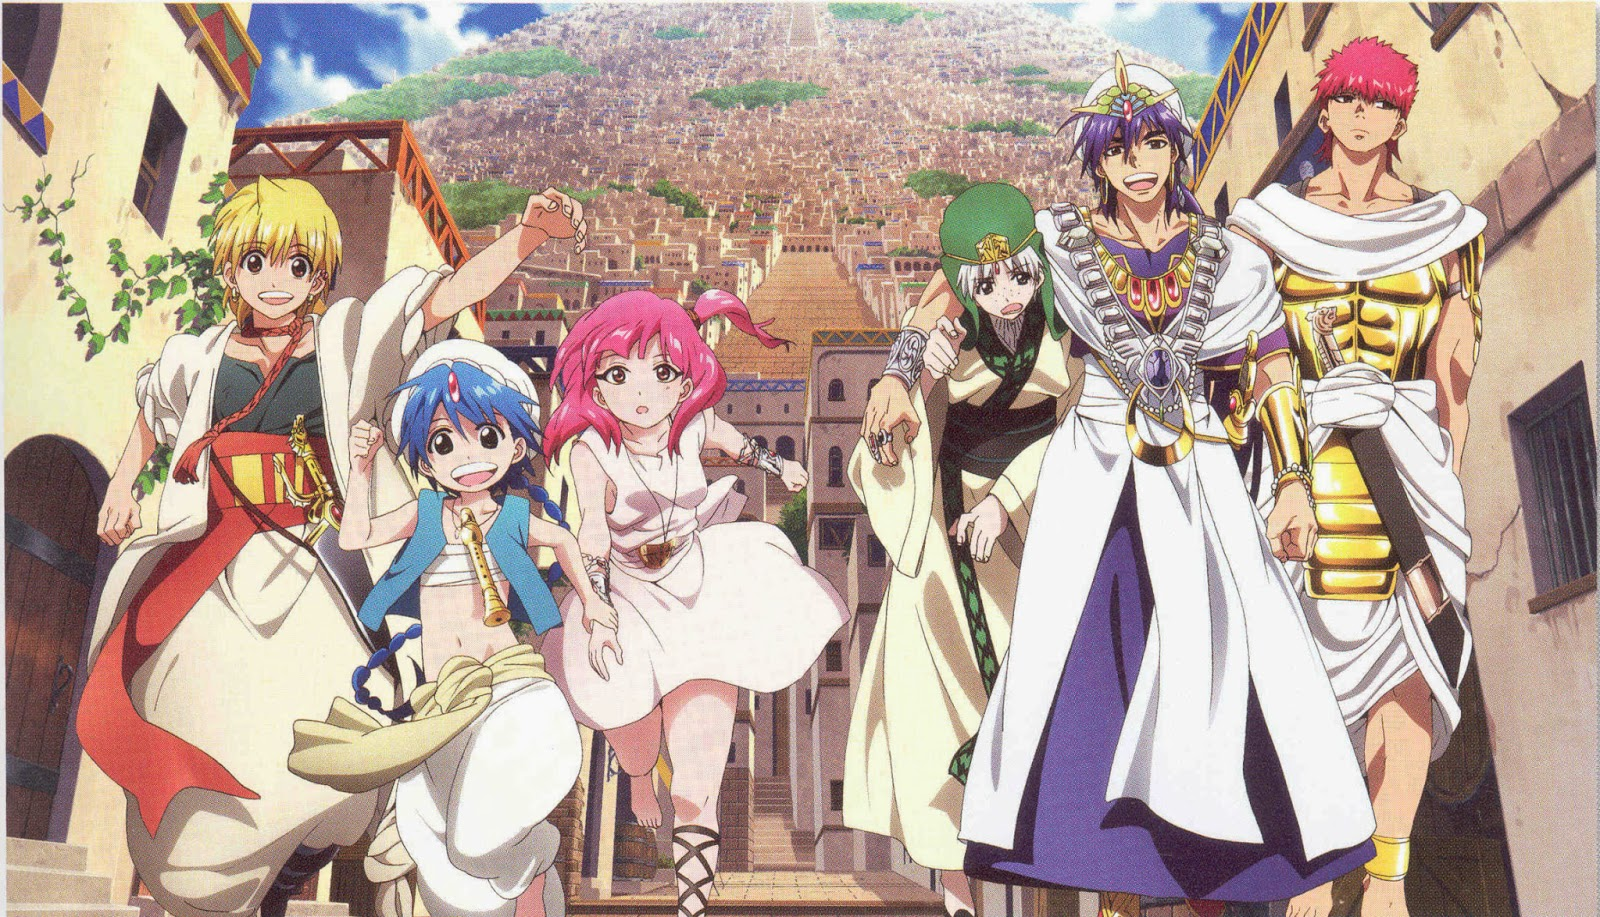 Blog De MaemiXD: Magi: The Labyrinth Of Magic